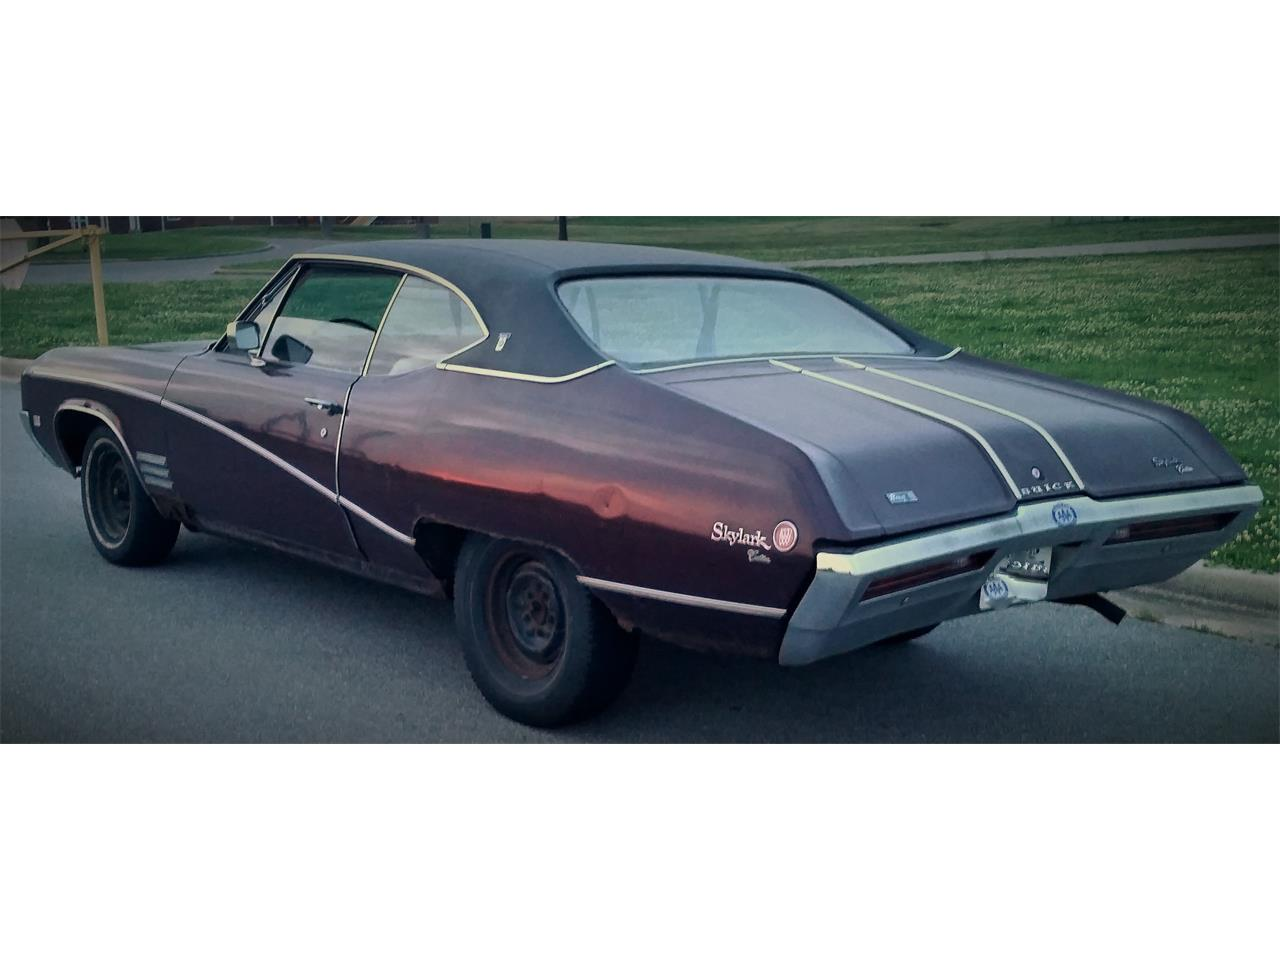 Large Picture of Classic 1968 Buick Skylark located in Alabama - $3,000.00 - CEAZ